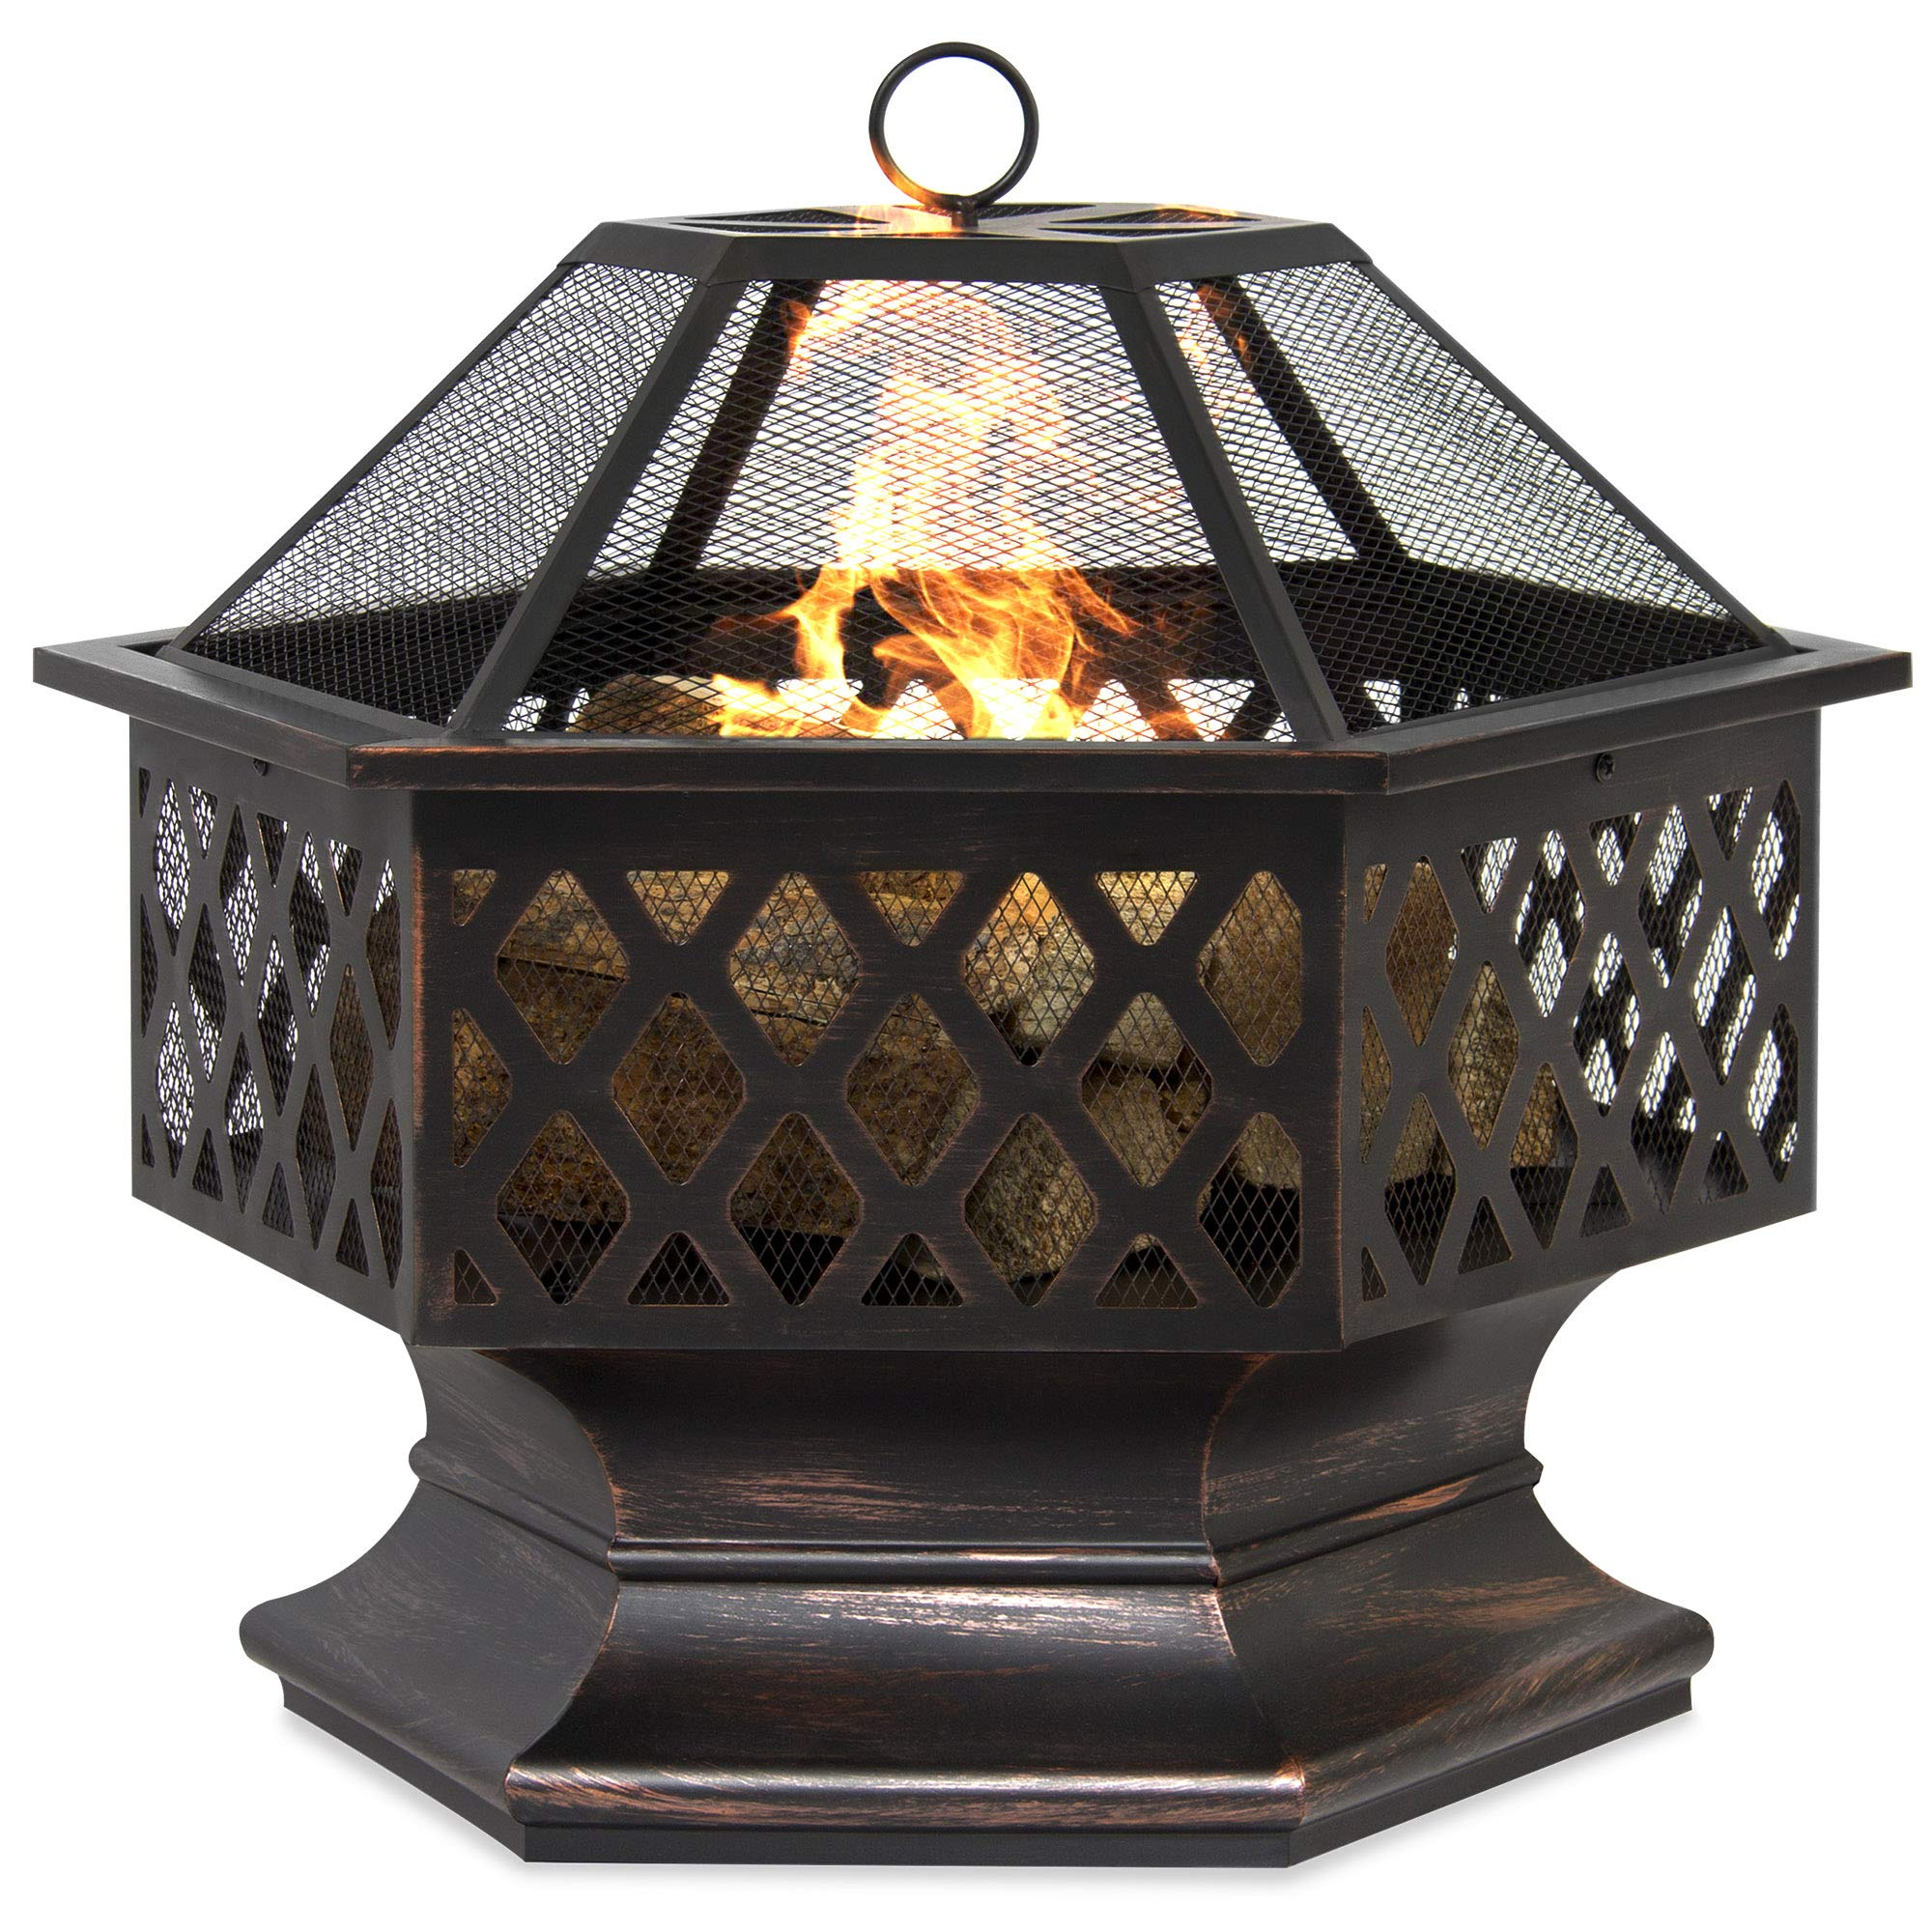 Best Choice Products 24in Hex-Shaped Steel Fire Pit Decoration Accent for Patio, Backyard, Poolside w/Flame-Retardant Lid - Black by Best Choice Products